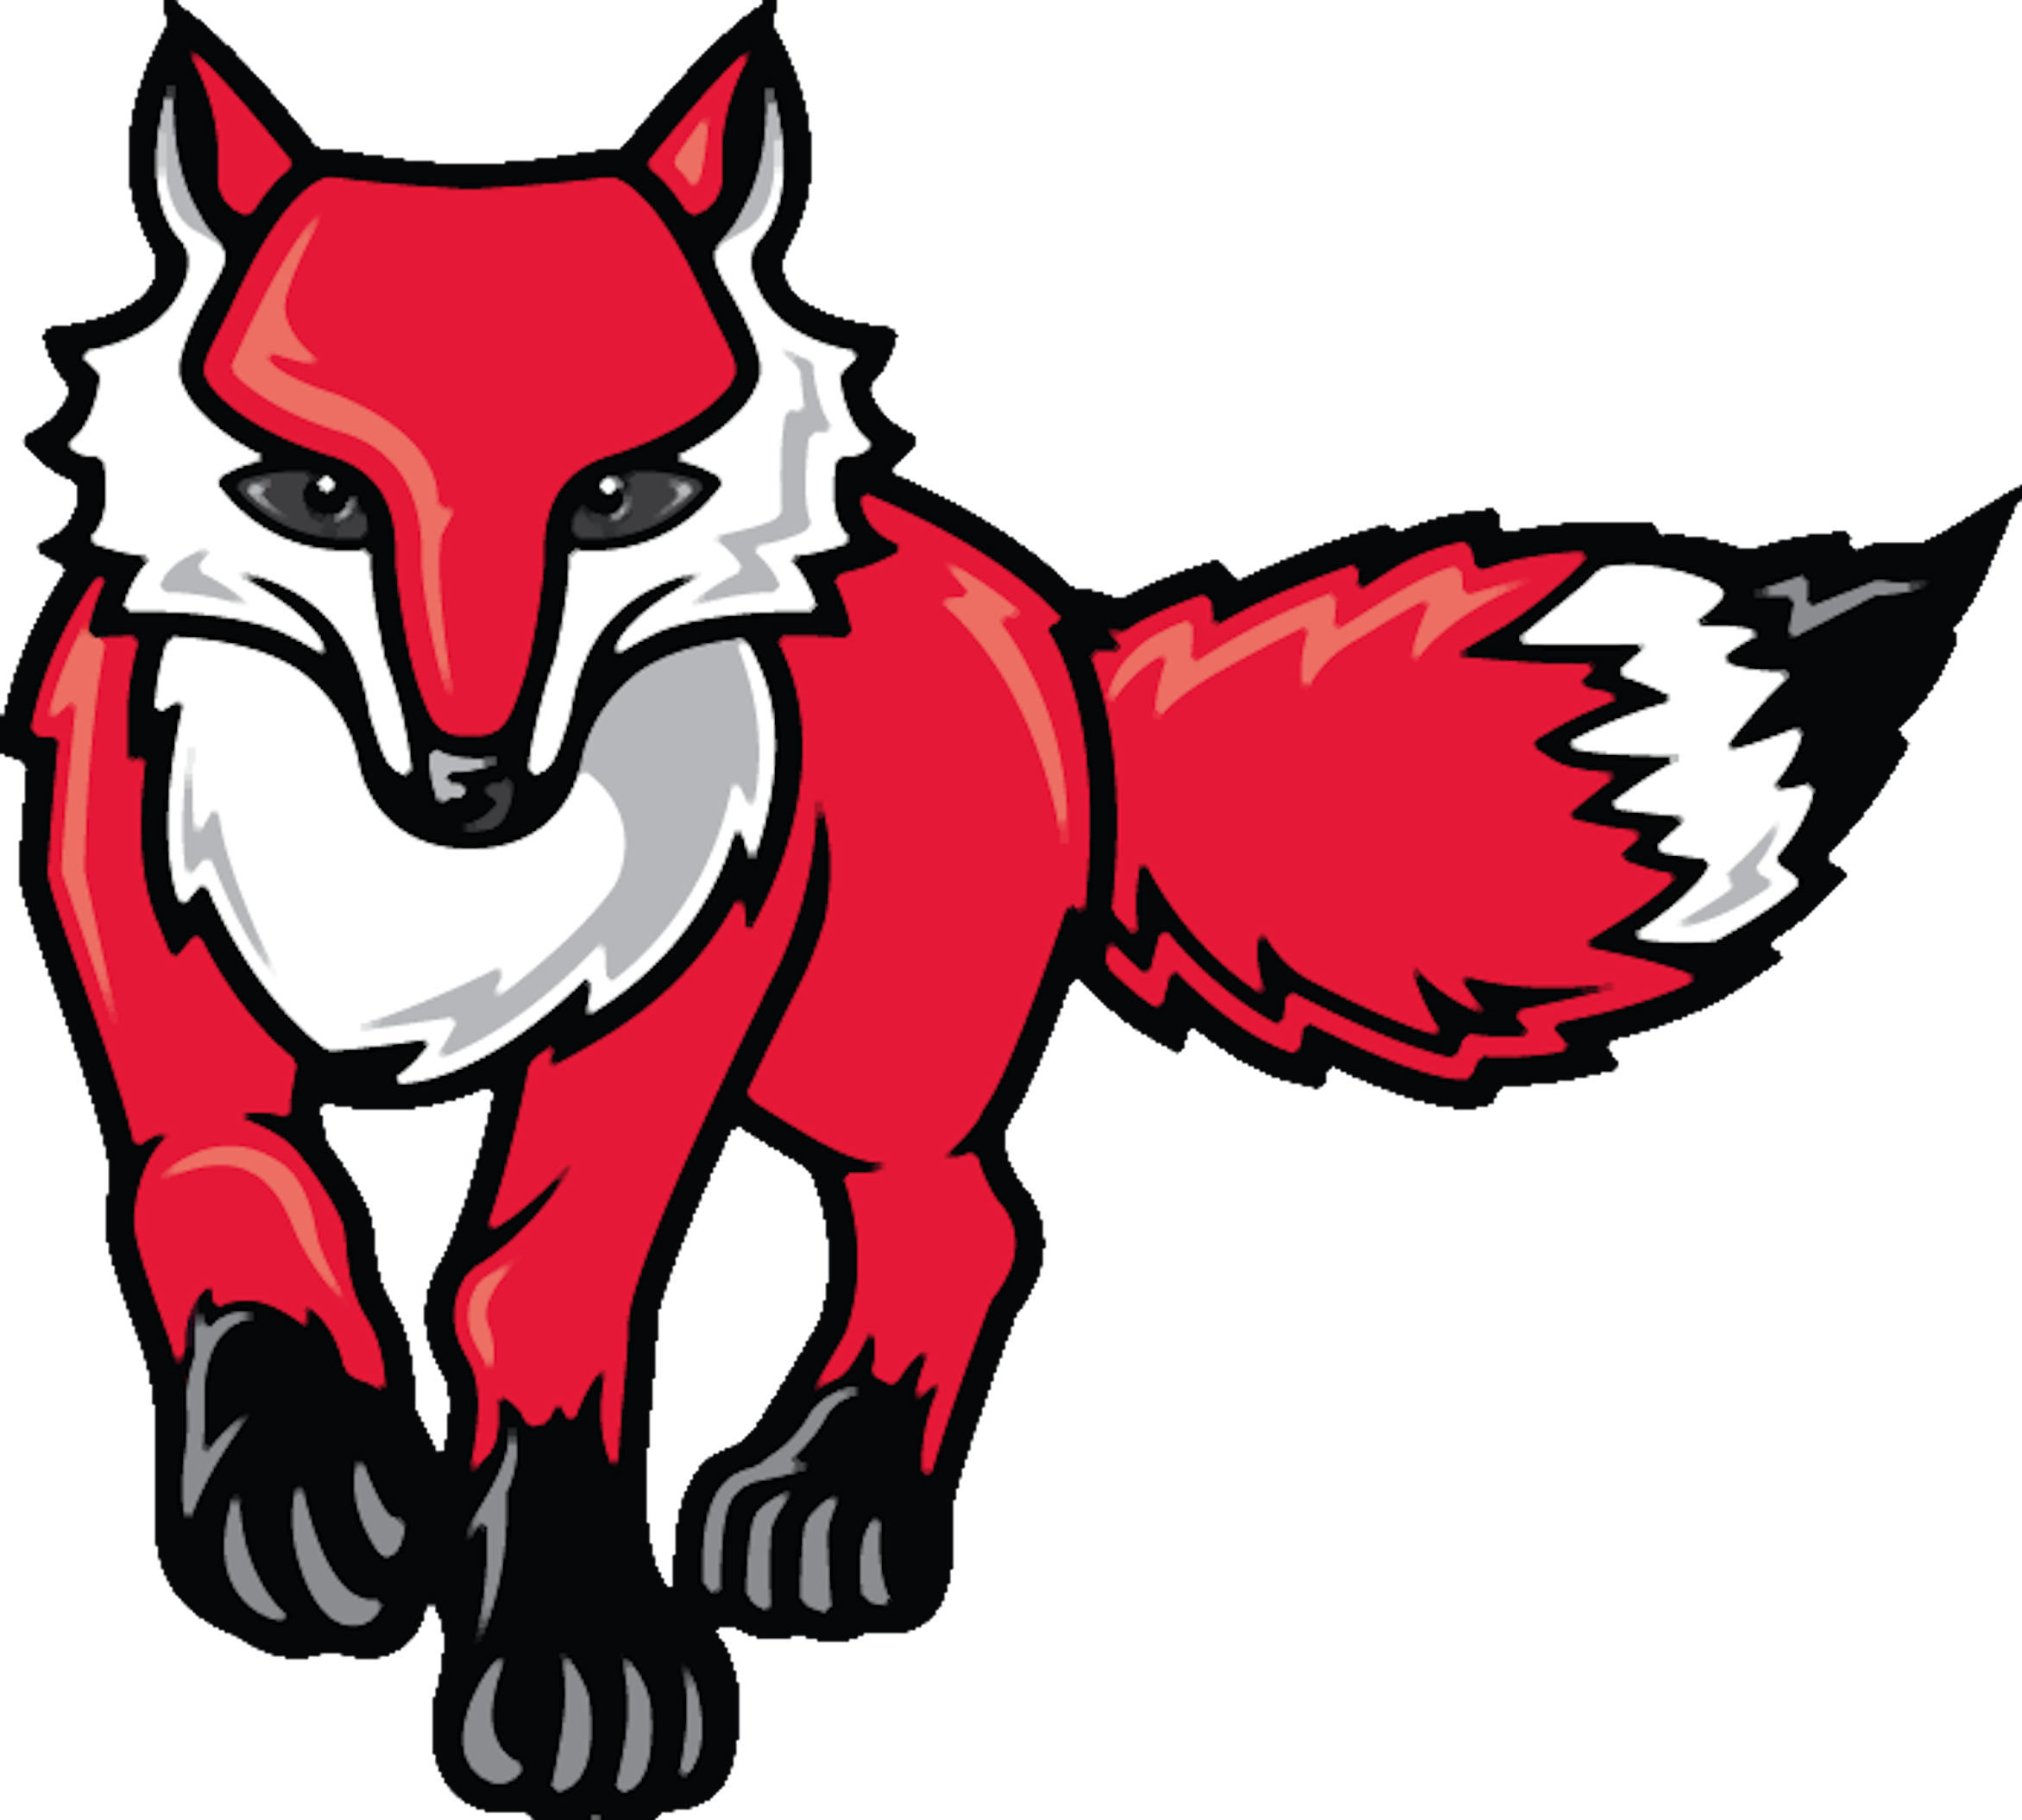 red fox free images at clker com vector clip art online royalty rh clker com